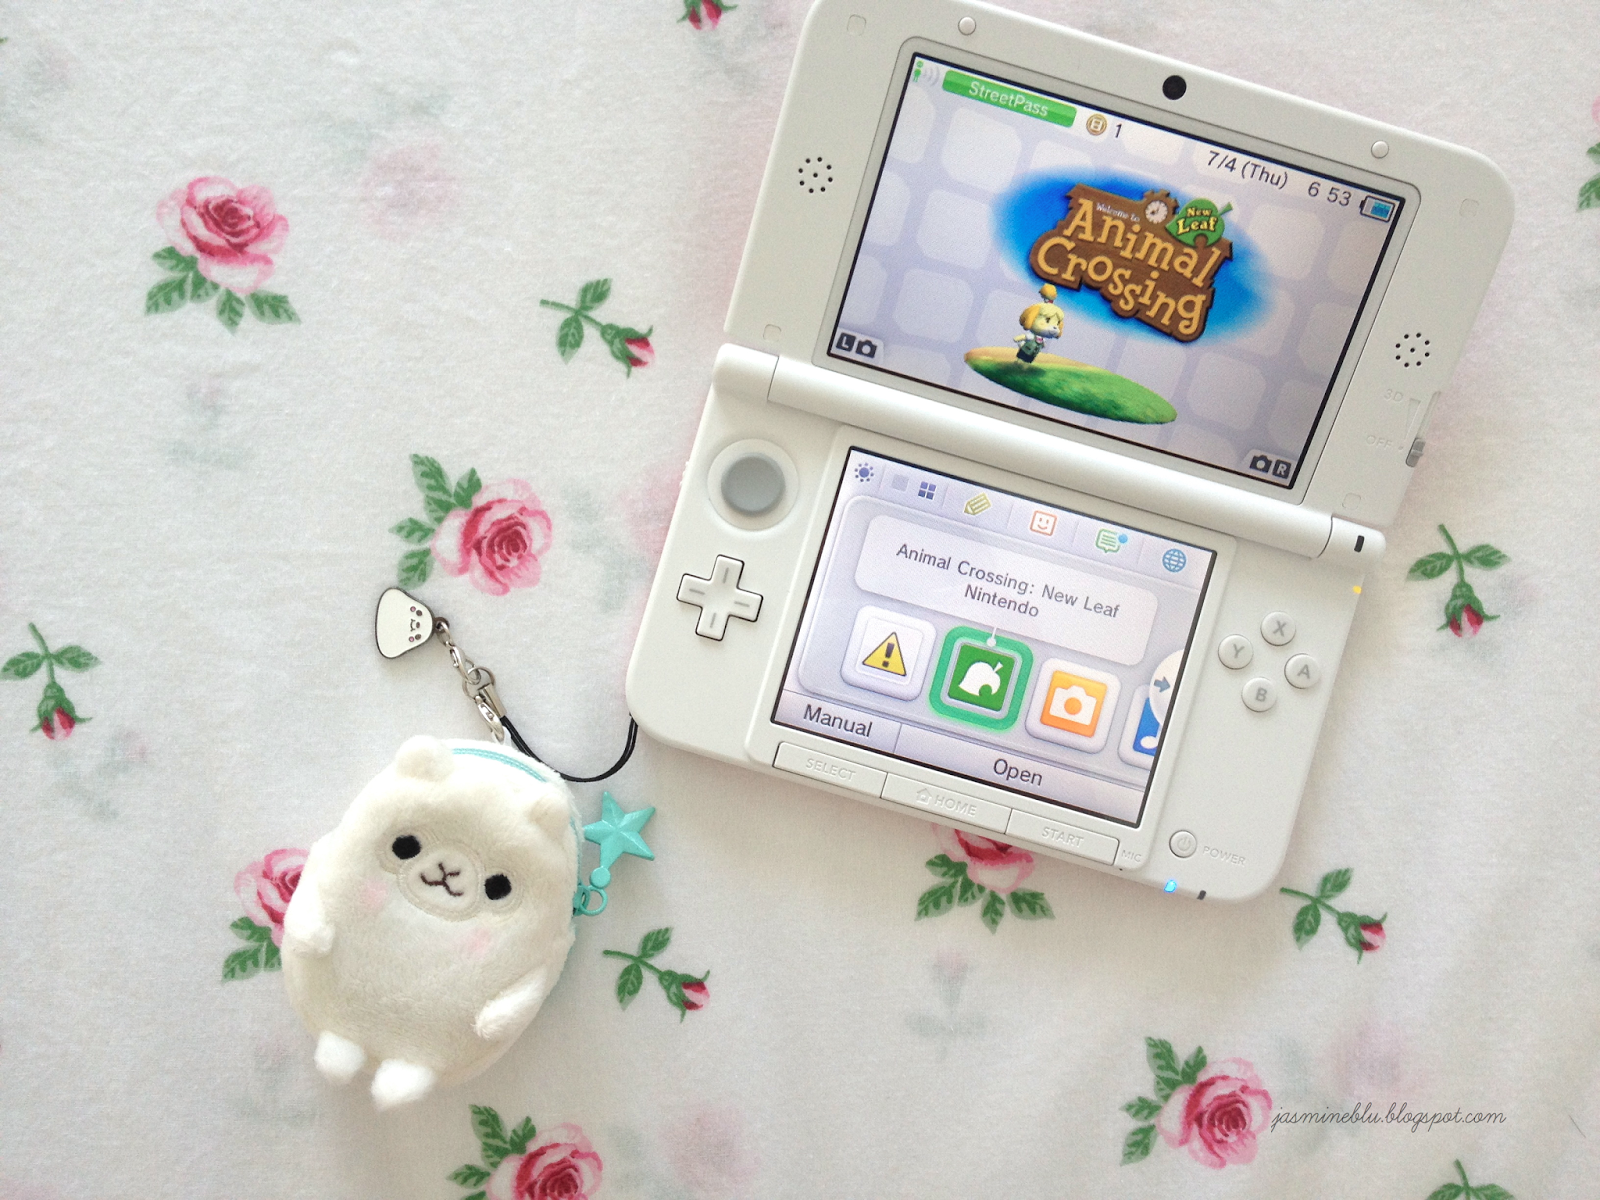 Cantliveitdown: 3ds Xl + Animal Crossing New Leaf Review ™�